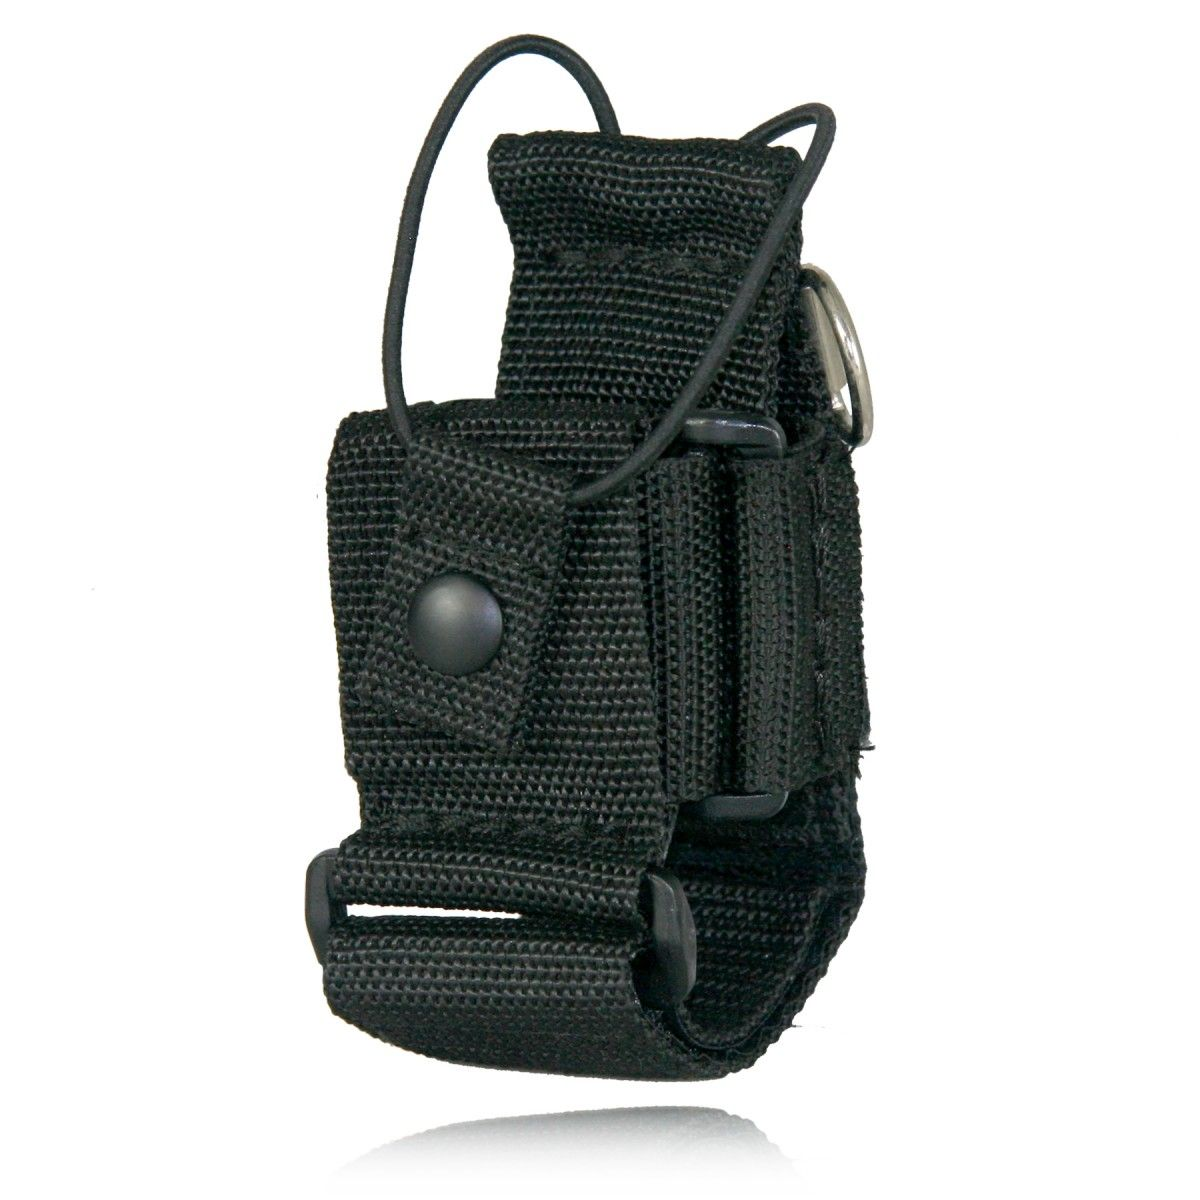 Firefighter's Adjustable Radio Holder, Ballistic Weave